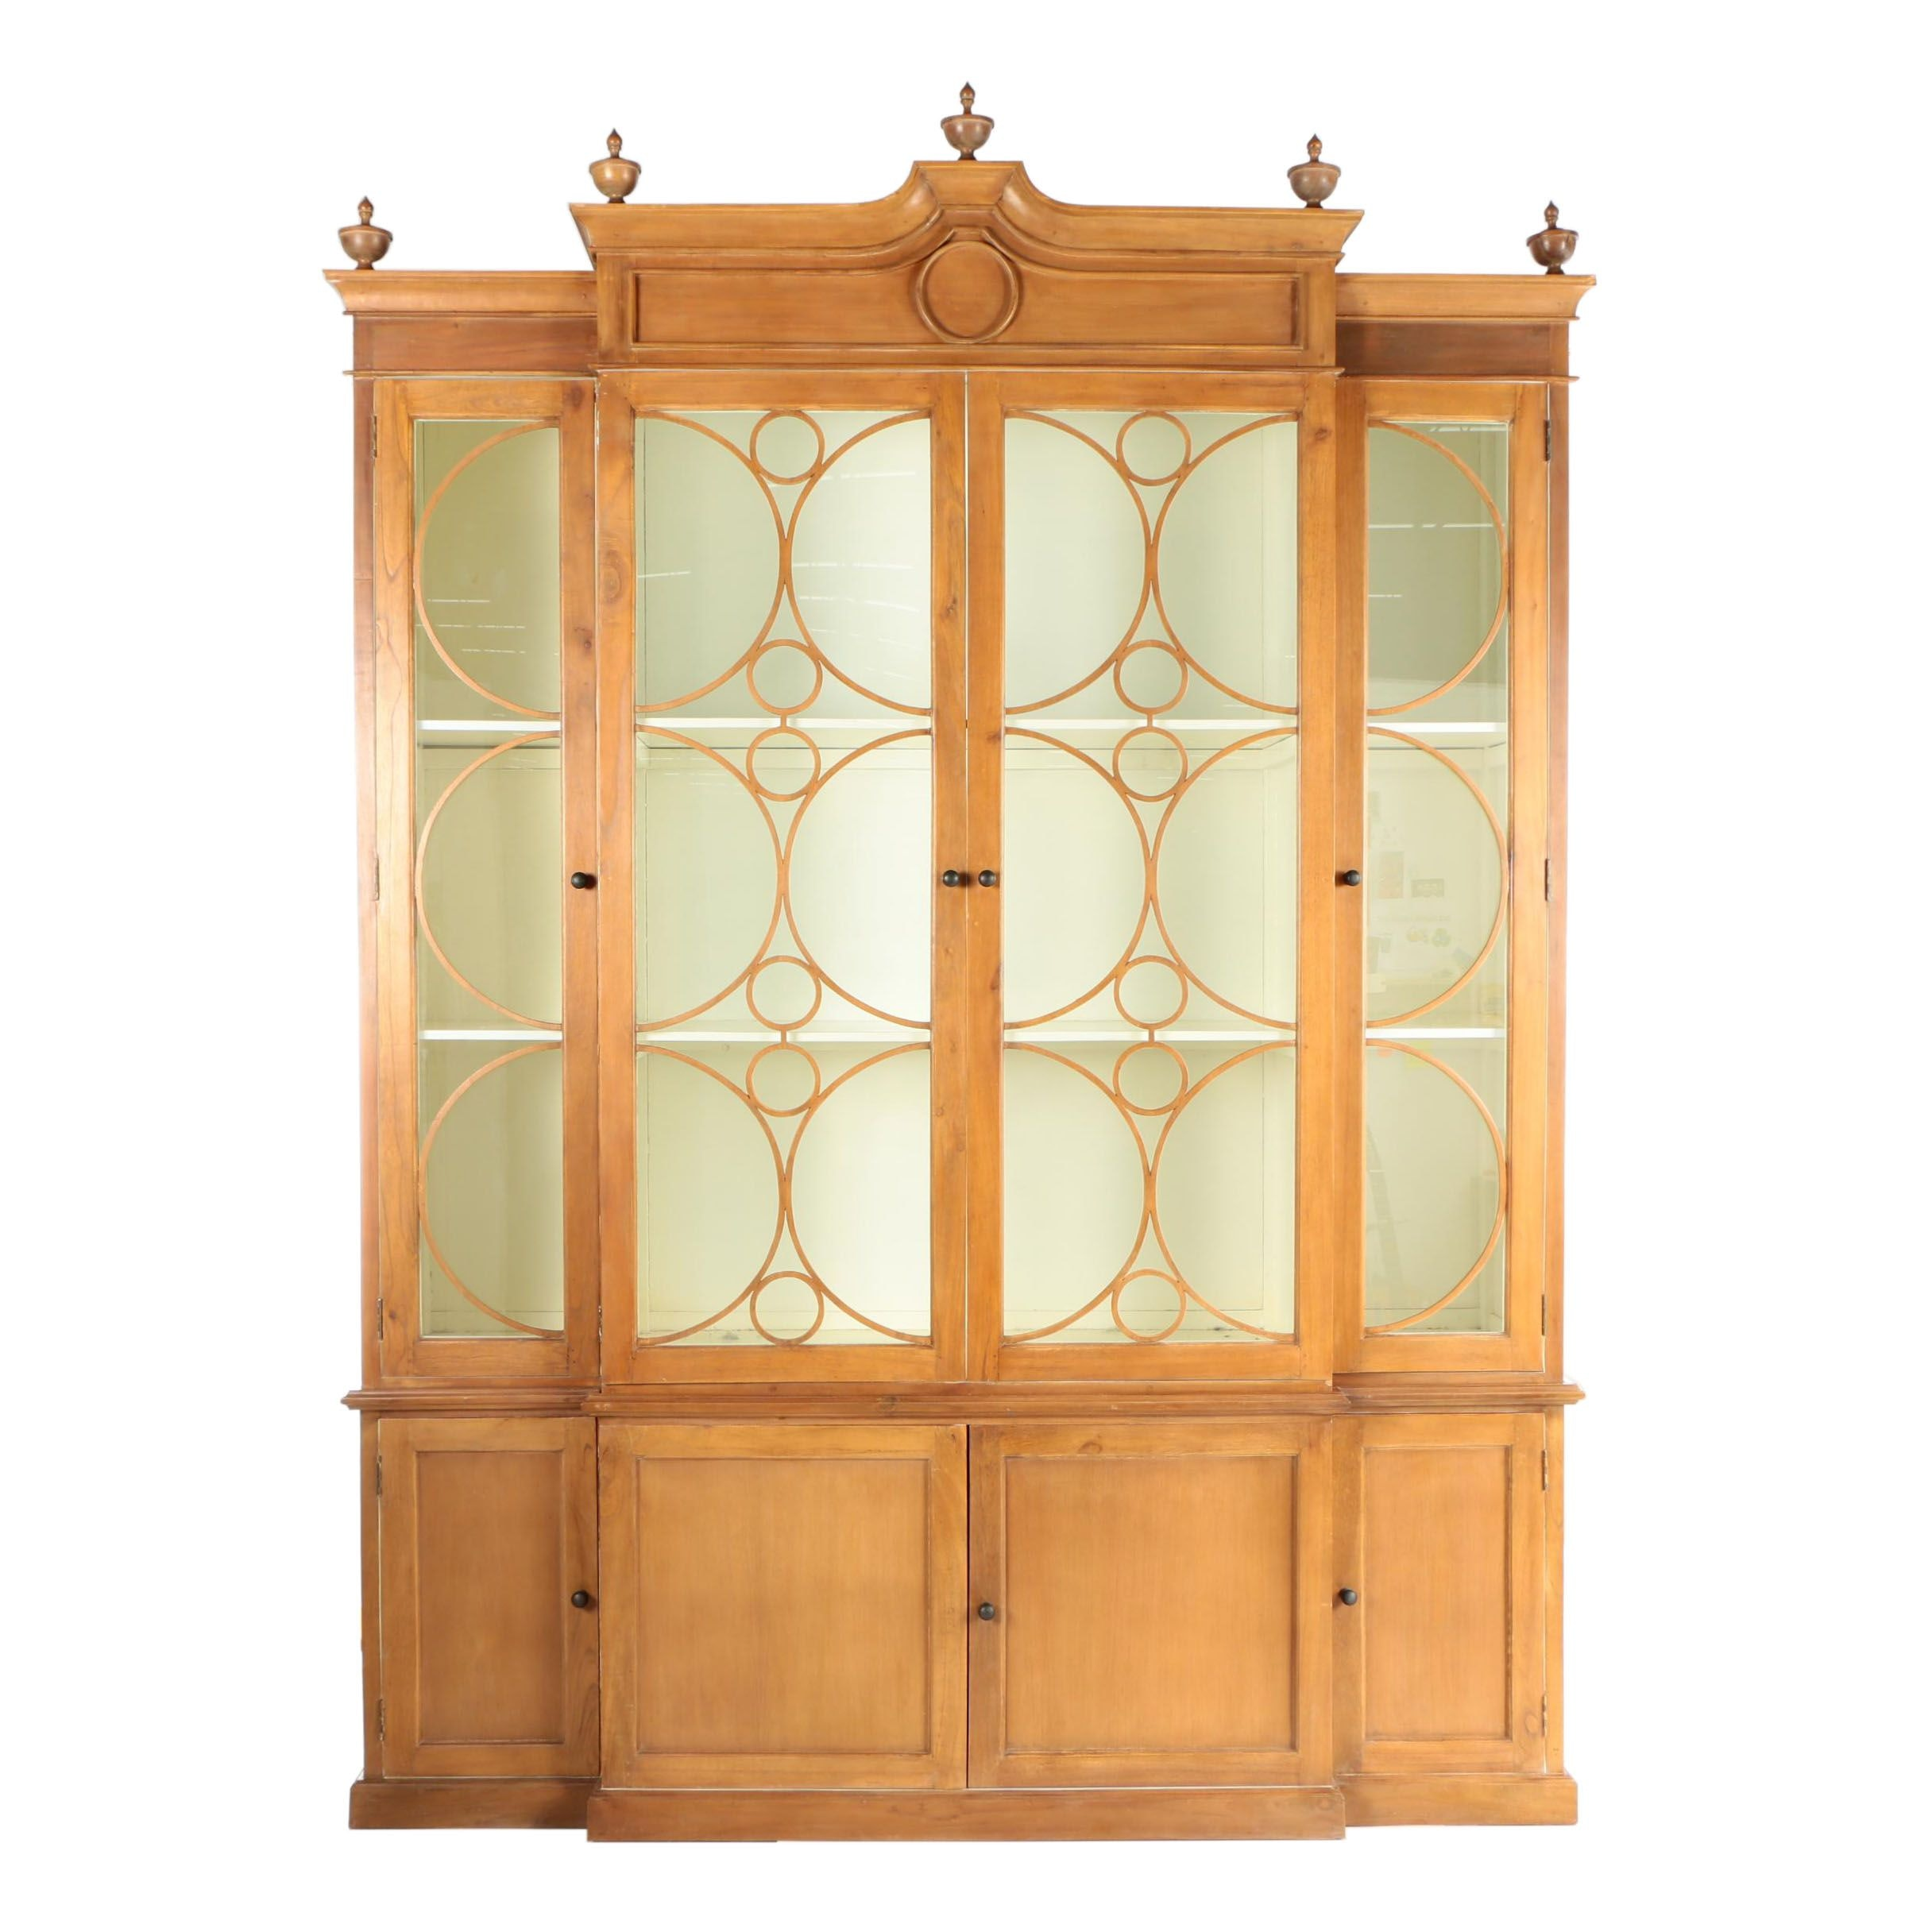 Monumental French Provincial Style Breakfront Display Cabinet